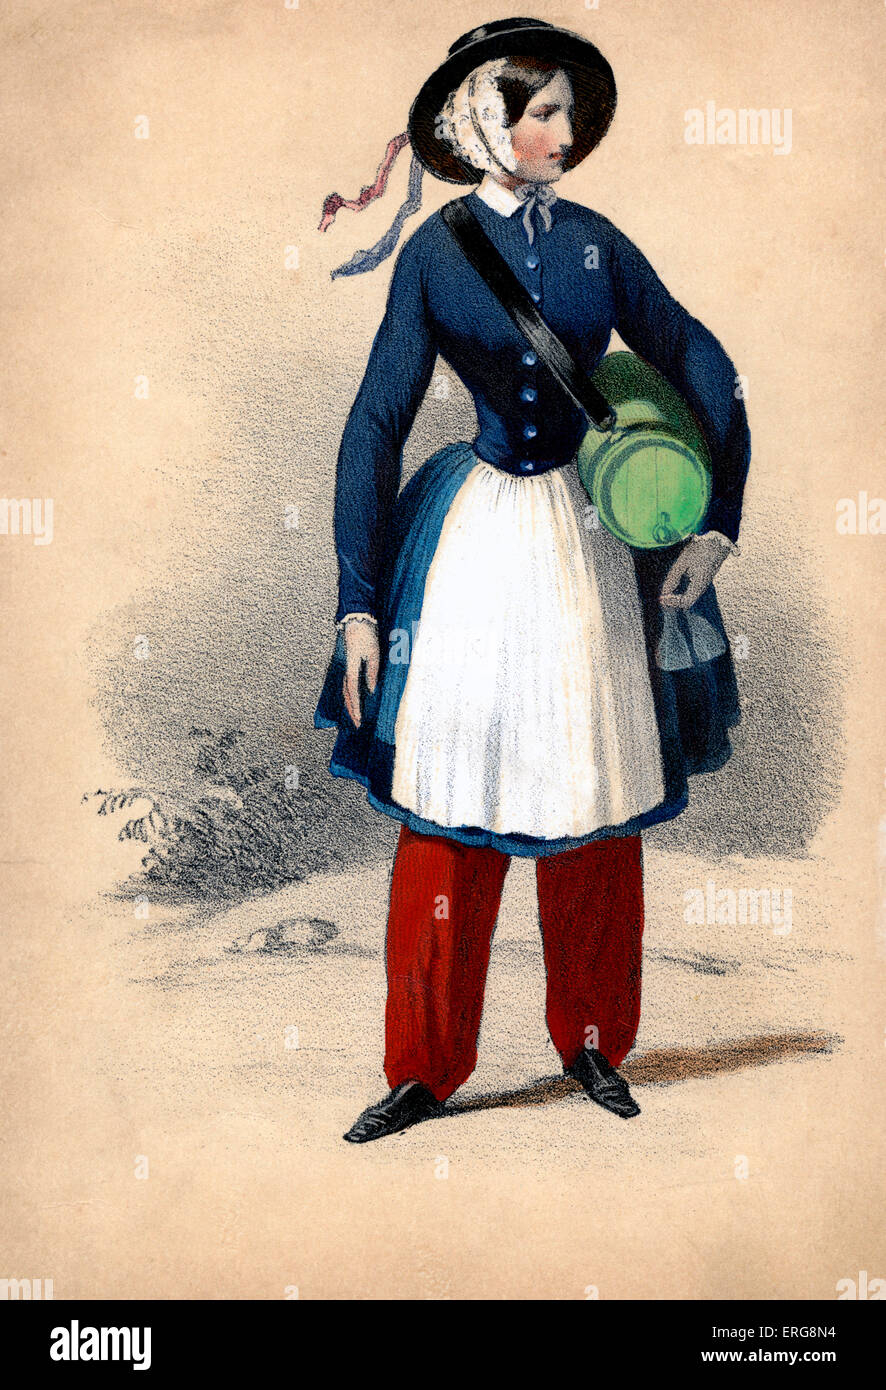 Vivandière: 19th century Frenchwoman attached to military regiments, selling wine to the troops and working - Stock Image